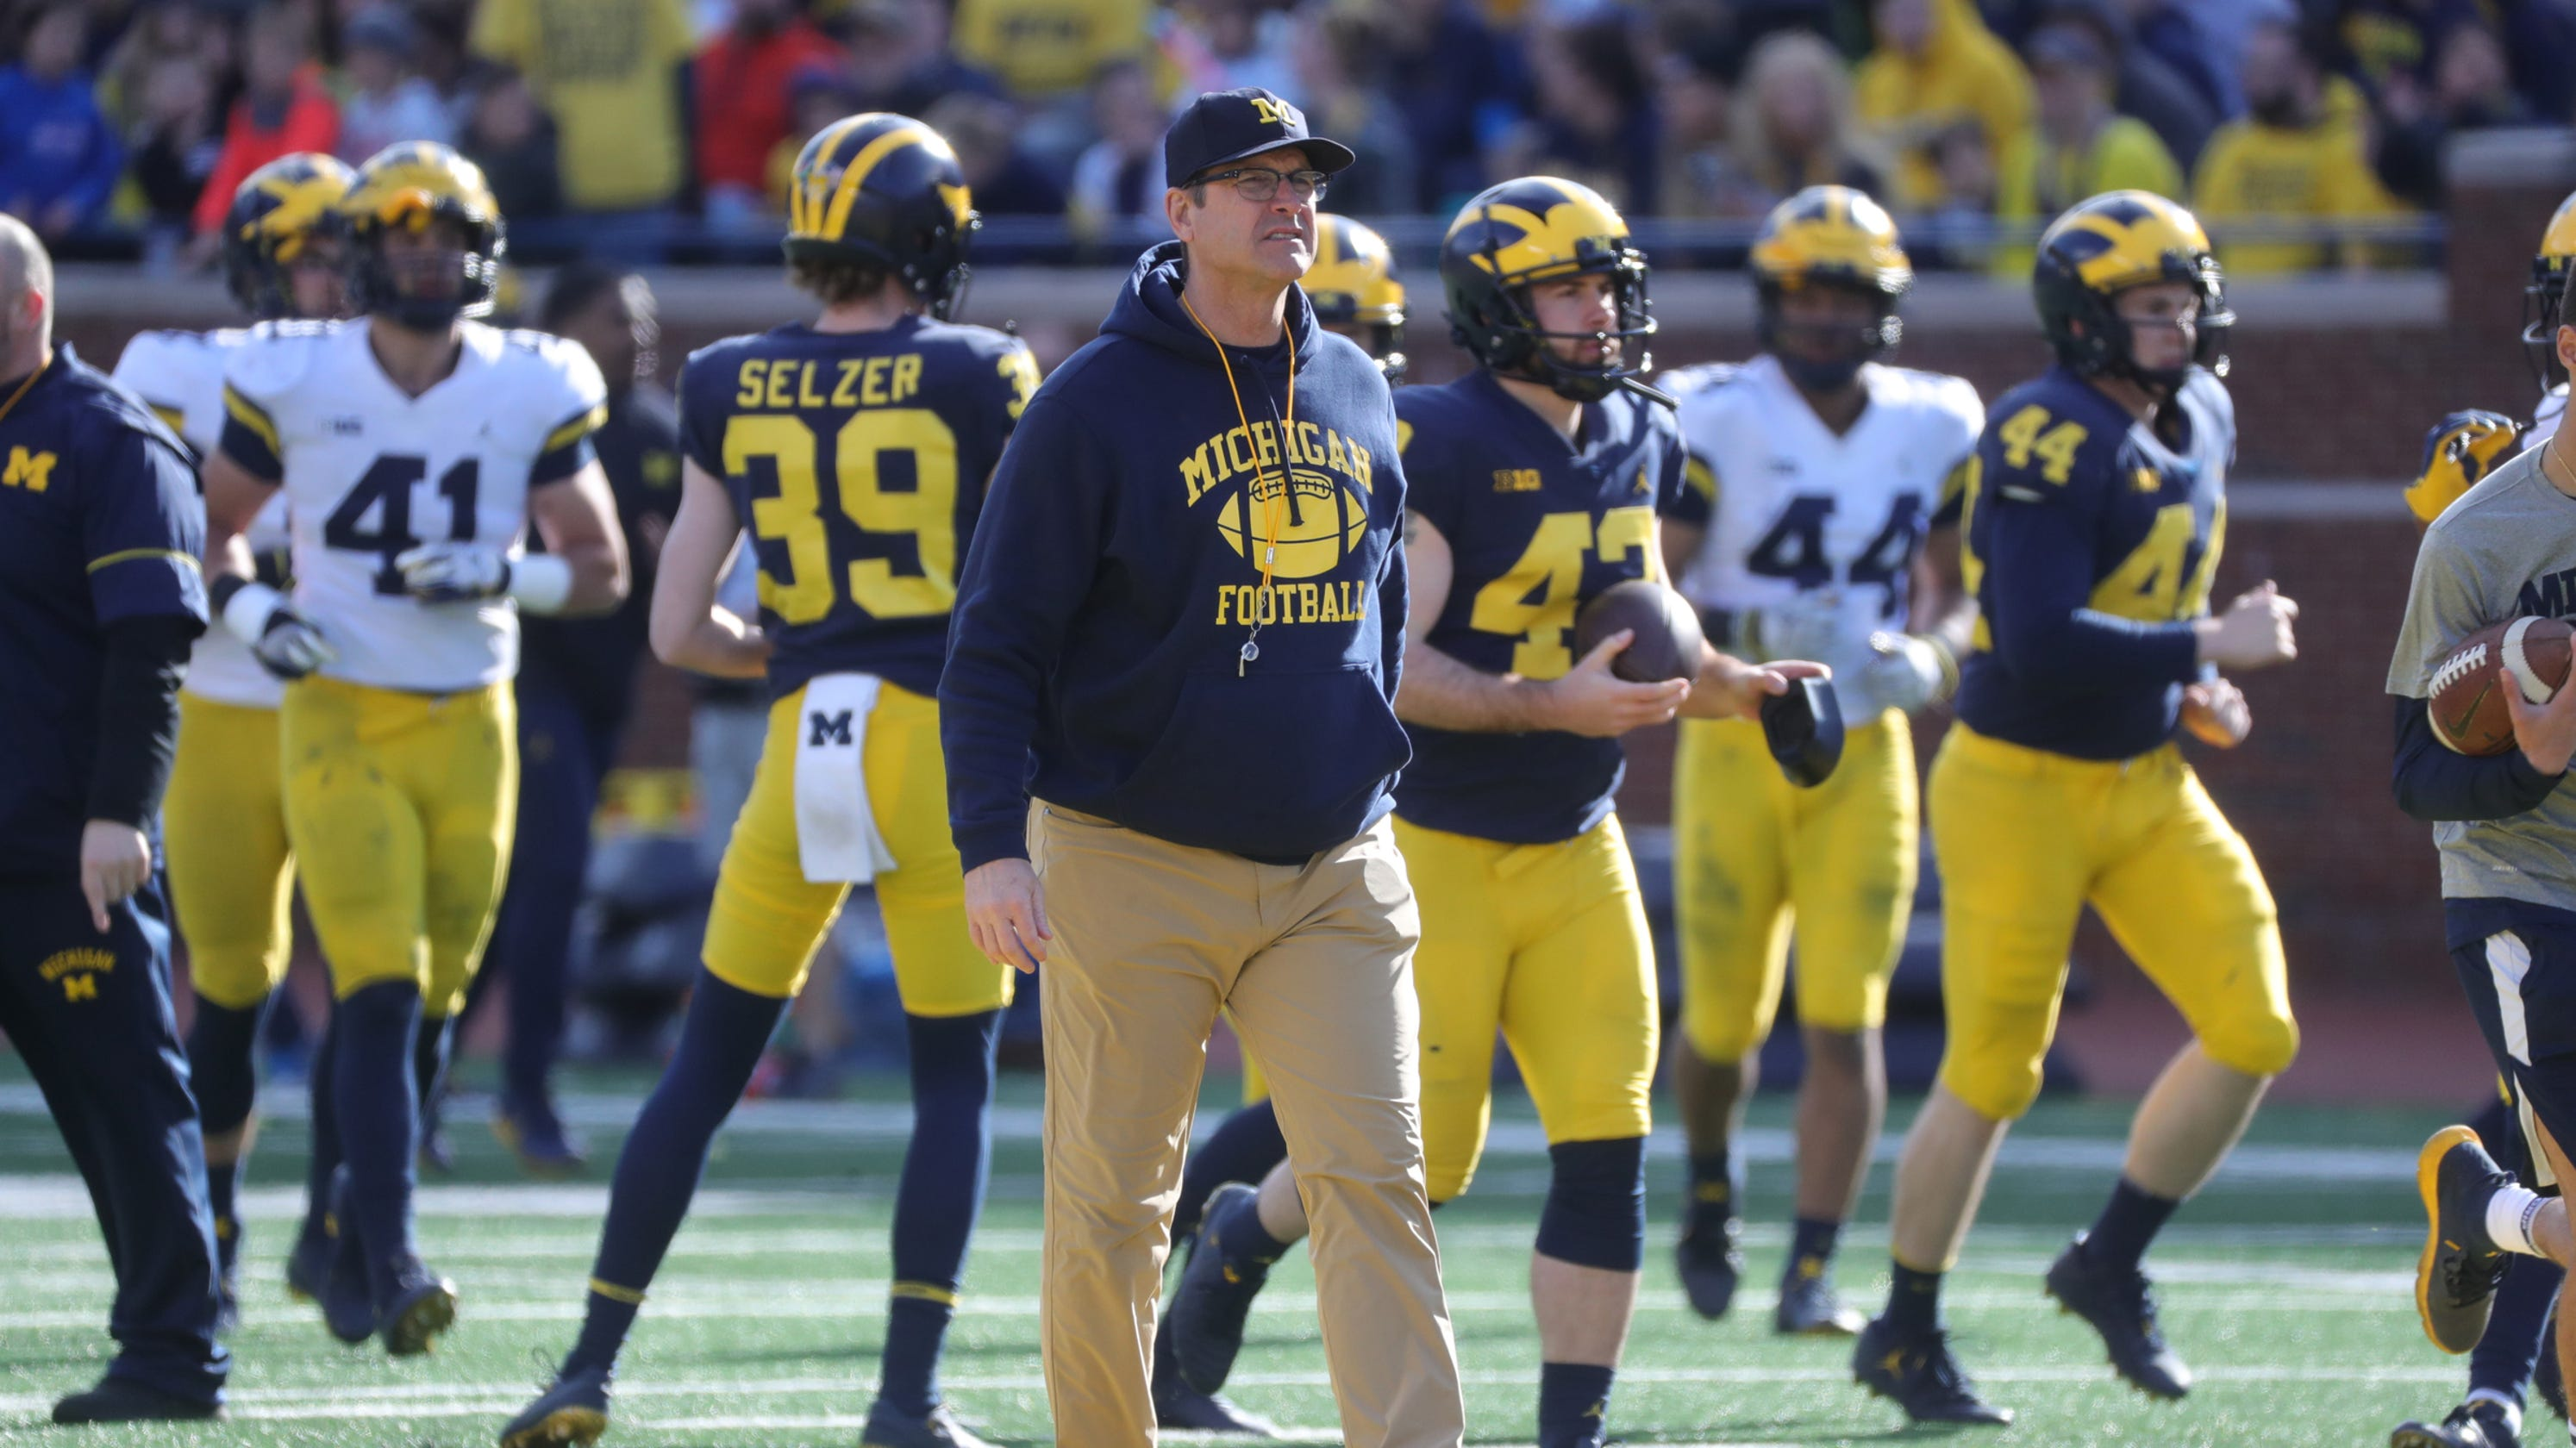 Michigan football recruiting: Team eyes another elite safety